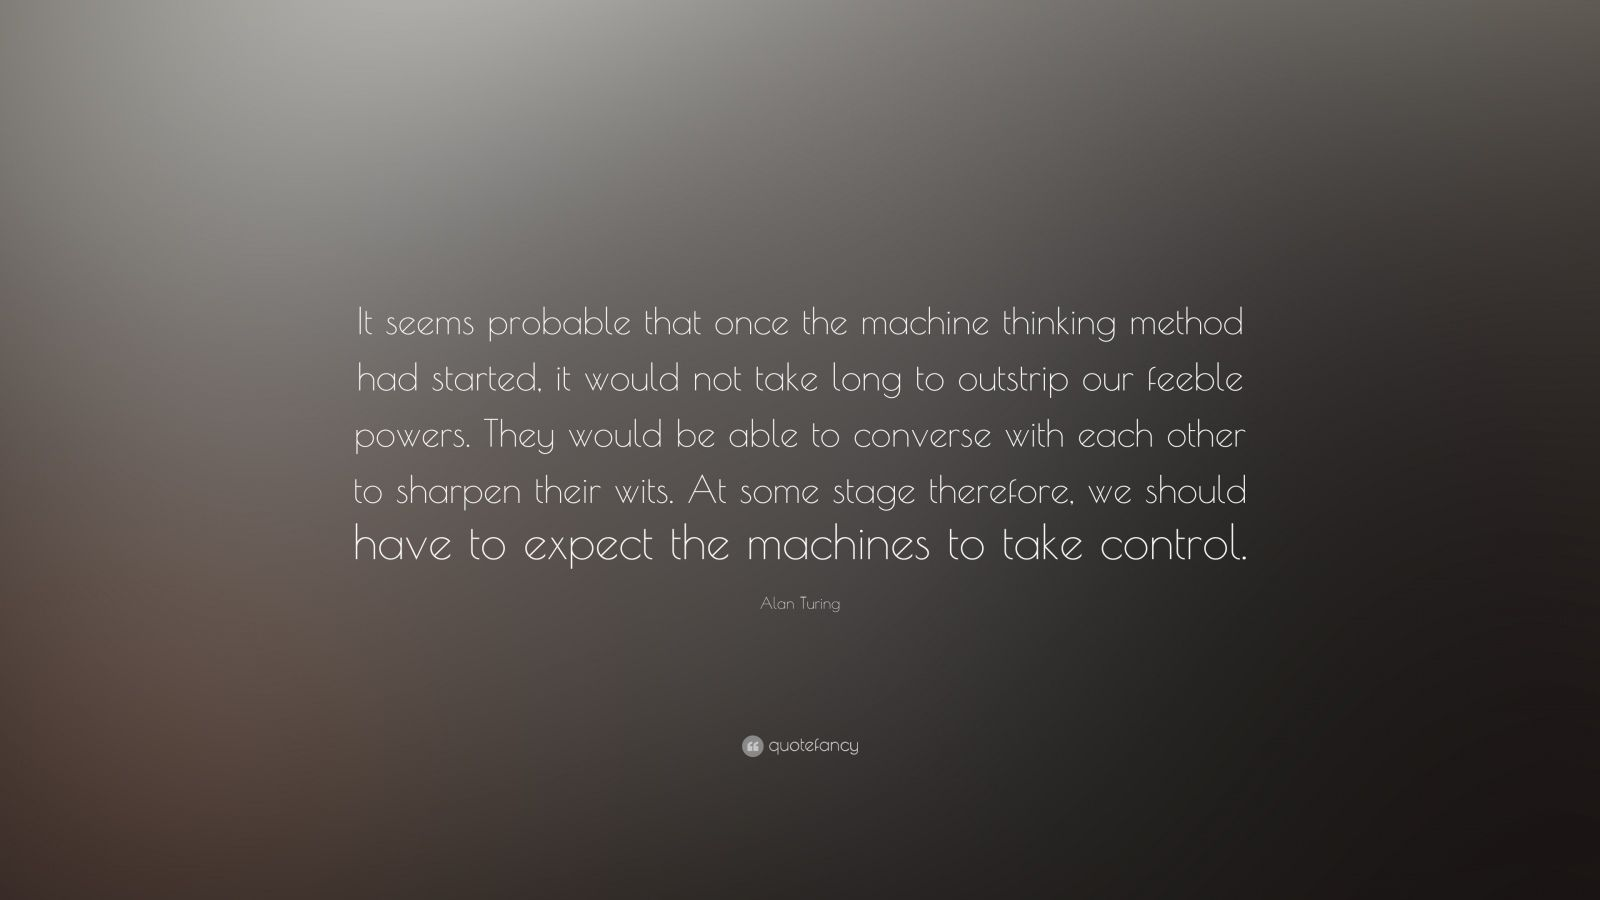 "Alan Turing Quote: ""It seems probable that once the machine thinking method had started, it would not take long to outstrip our feeble powers. They would be able to converse with each other to sharpen their wits. At some stage therefore, we should have to expect the machines to take control."""